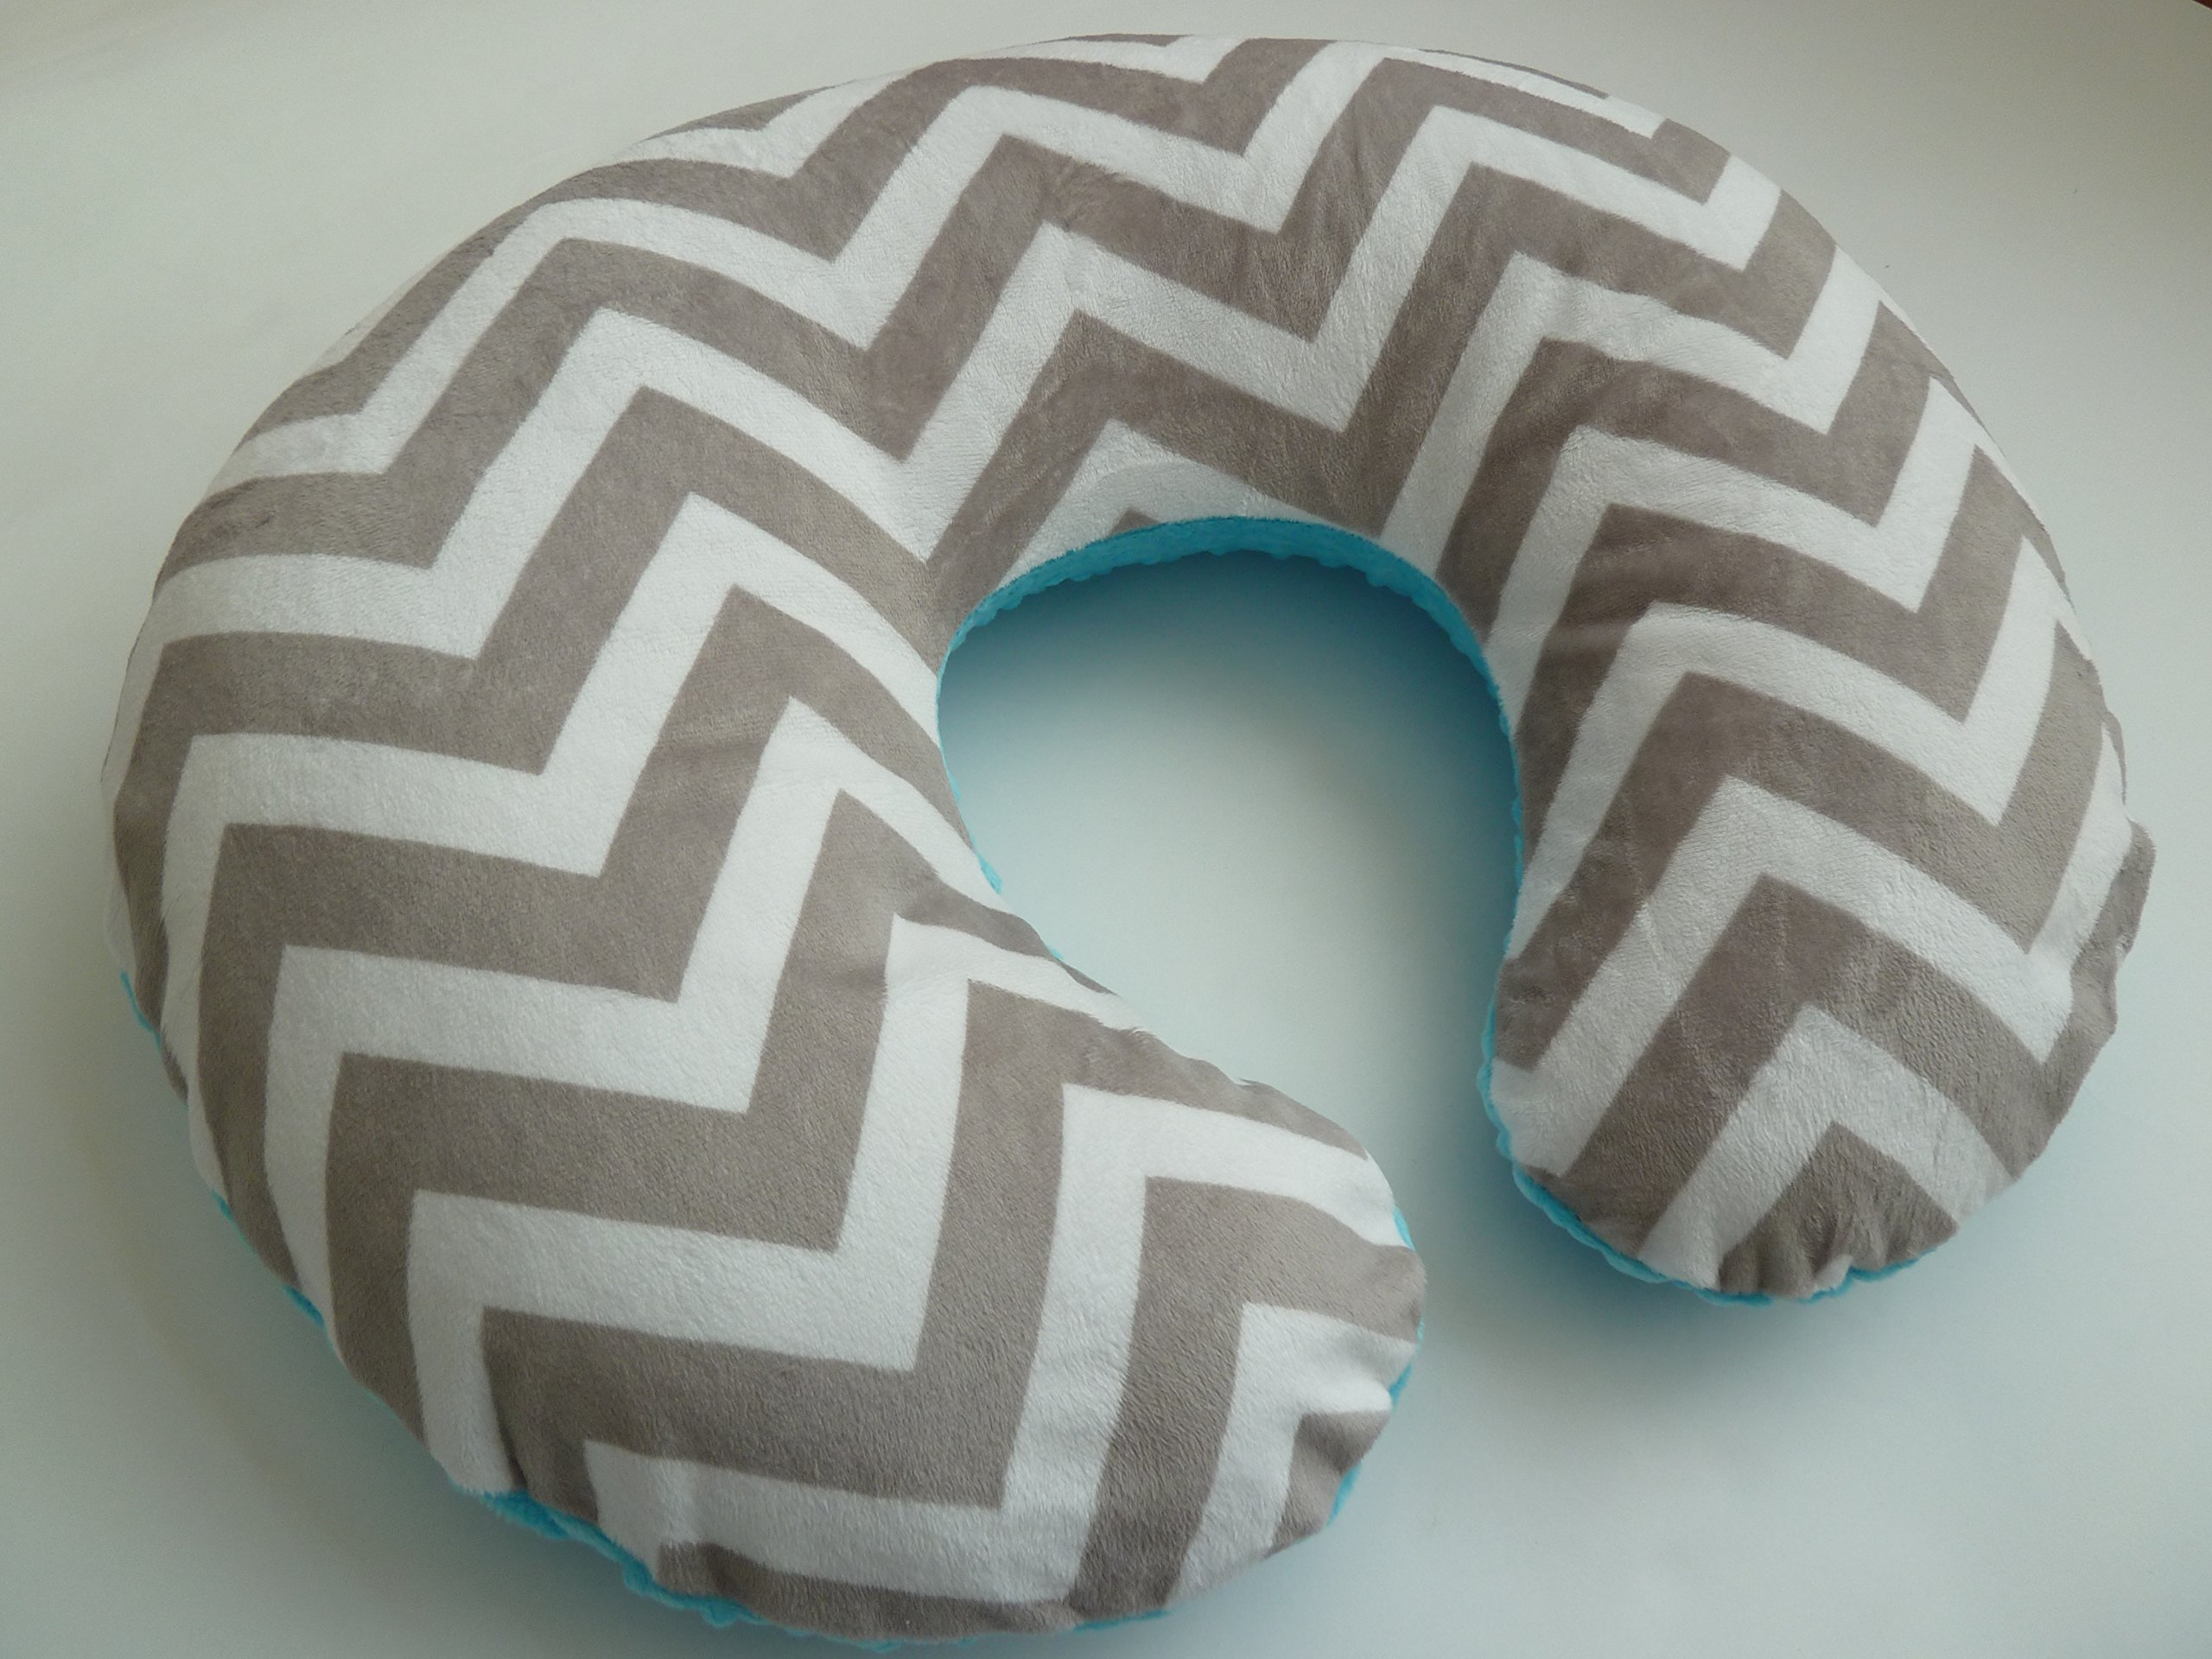 Nursing Pillow Cover. Silver Chevron Minky. You Choose the Dimple Dot Back. Back is pictured with Turquoise Dimple Dot.